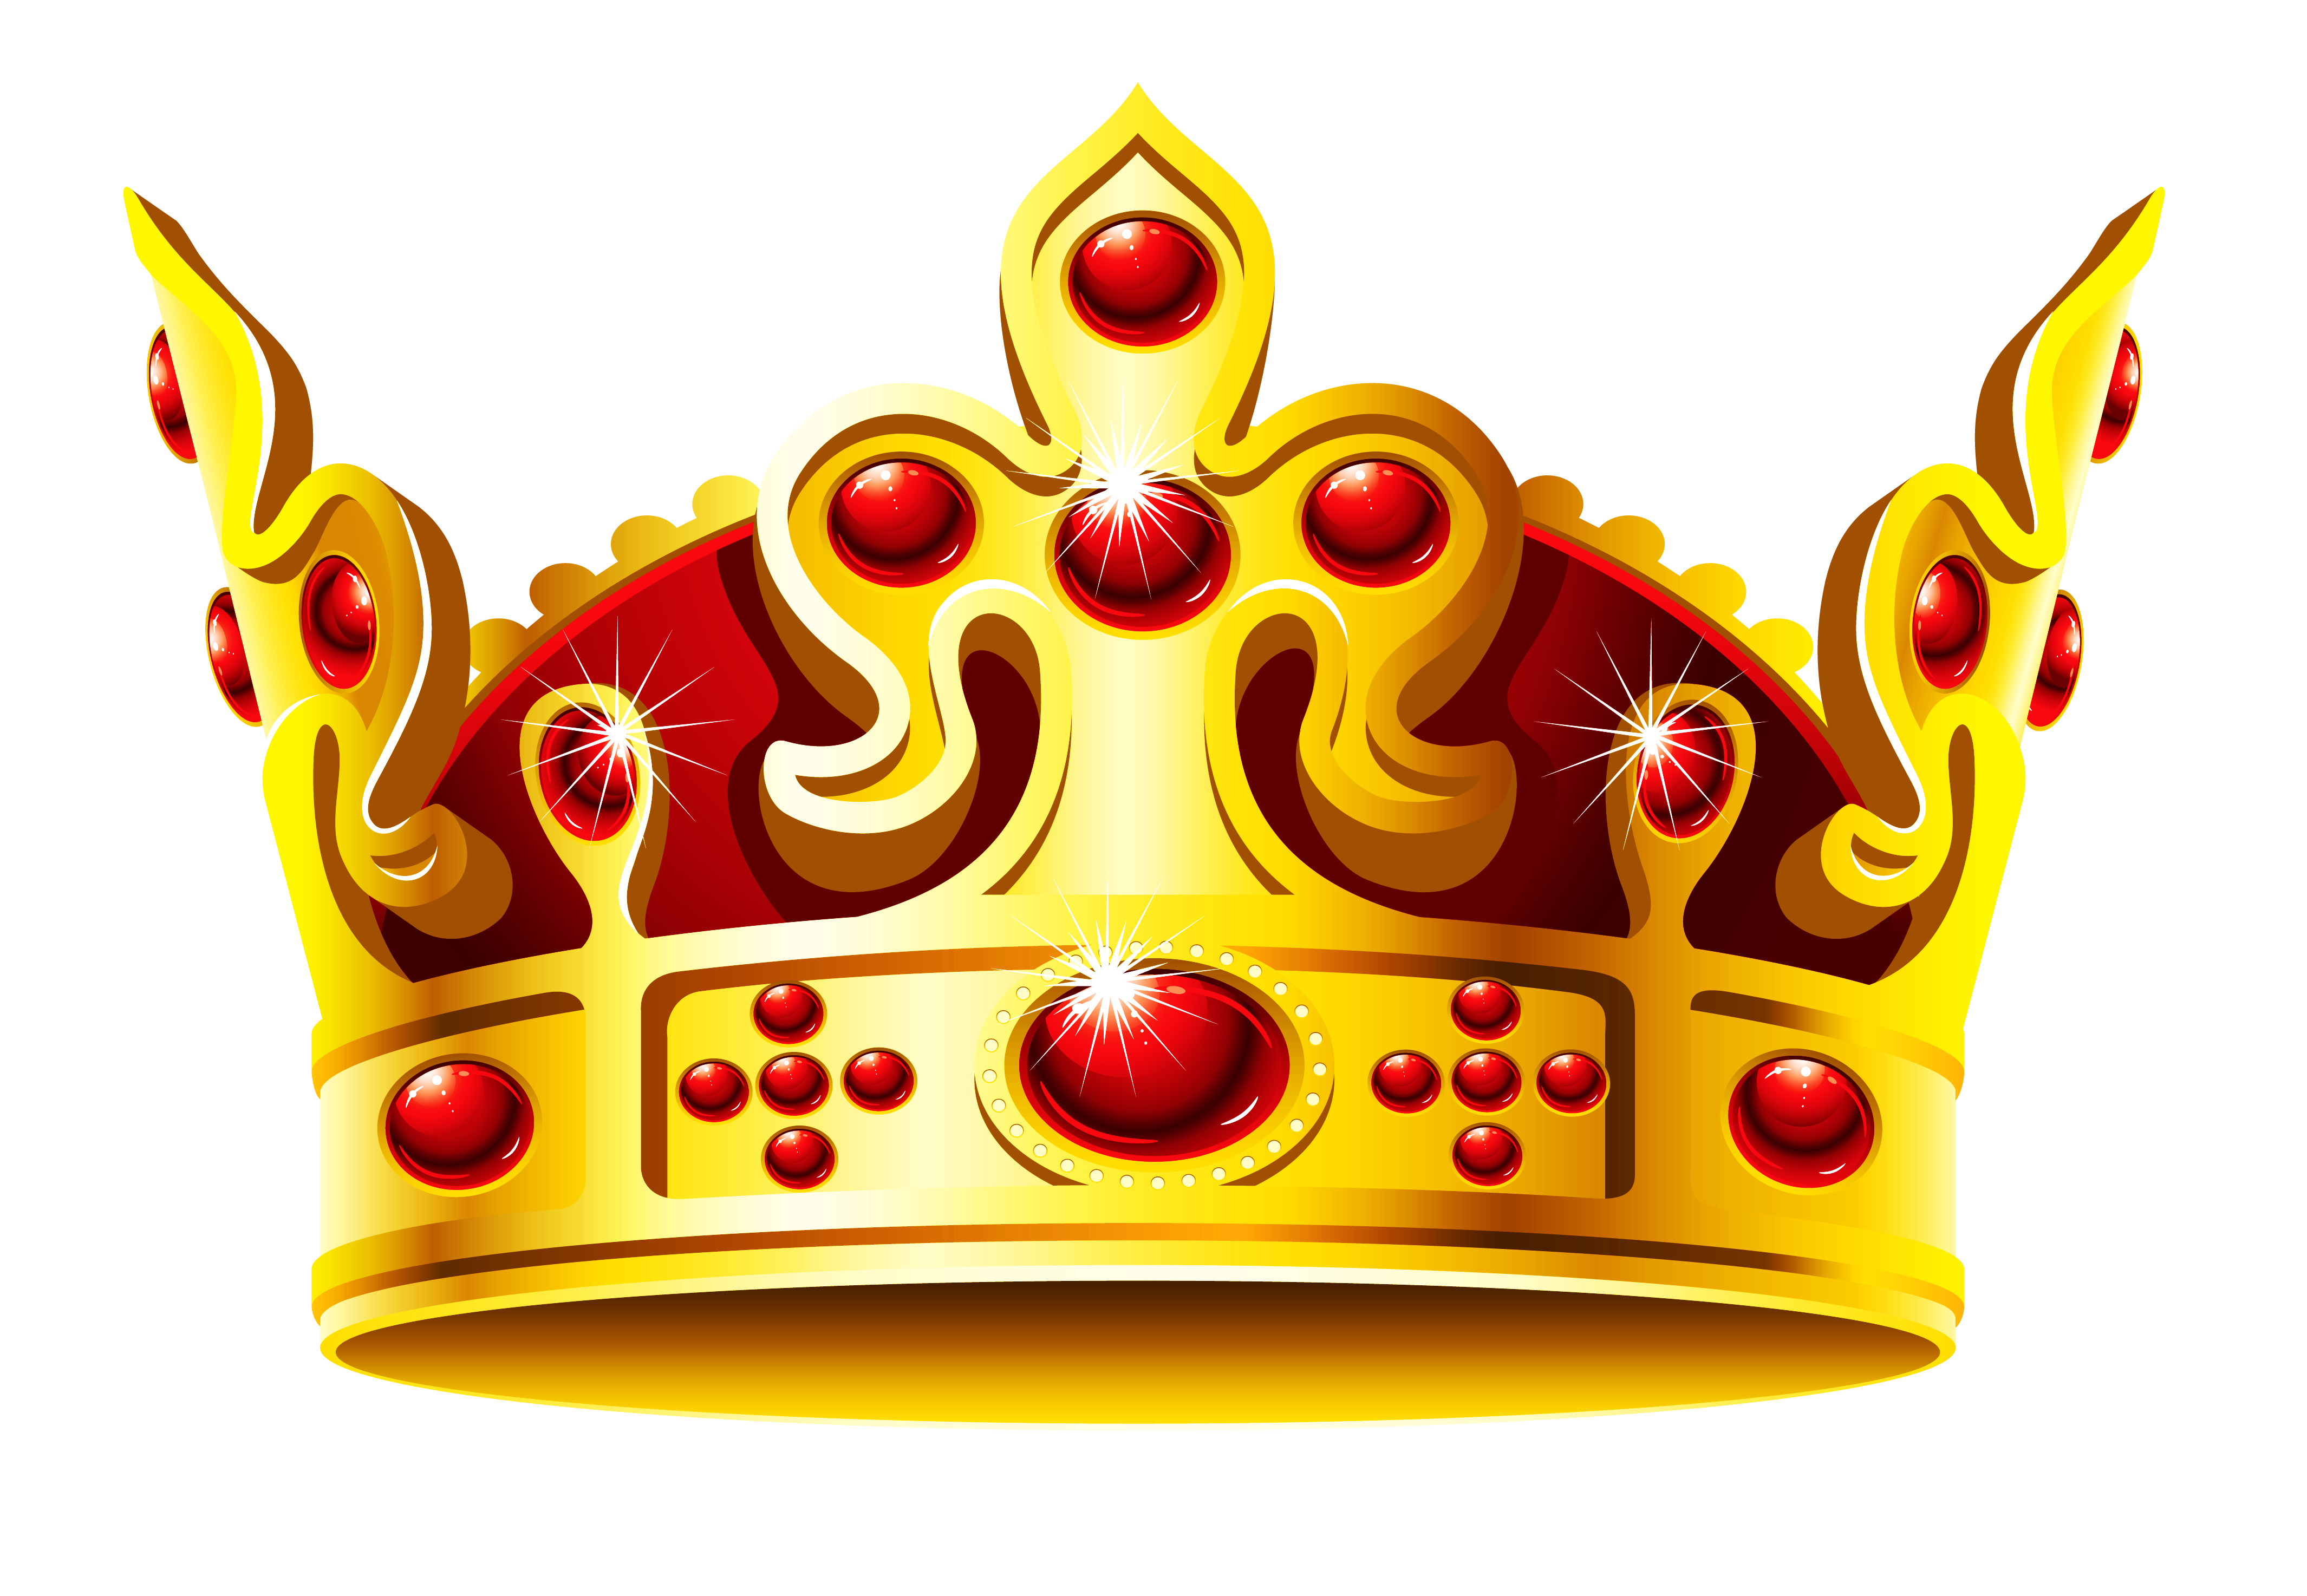 Gold King Crown Png - King Crown PNG HD Transparent King Crown HD.PNG Images.   PlusPNG